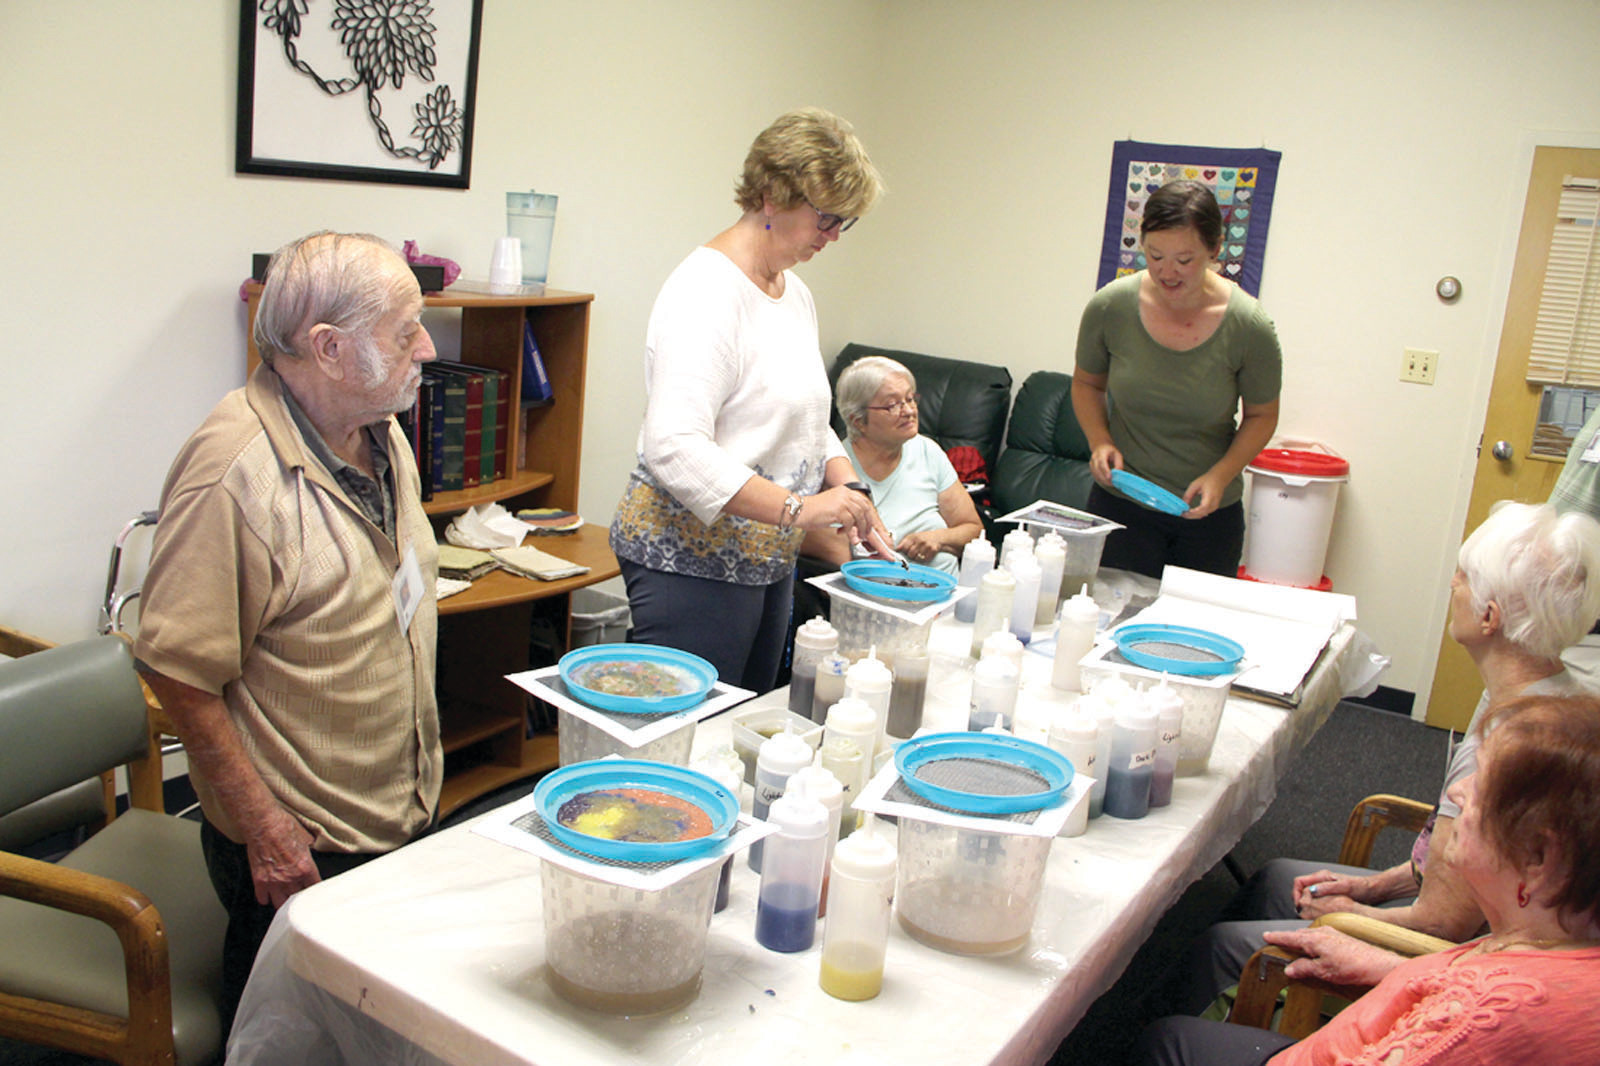 ALL TOGETHER NOW: Residents of the Cornerstone Adult Day Center pose with their handmade paper creations.